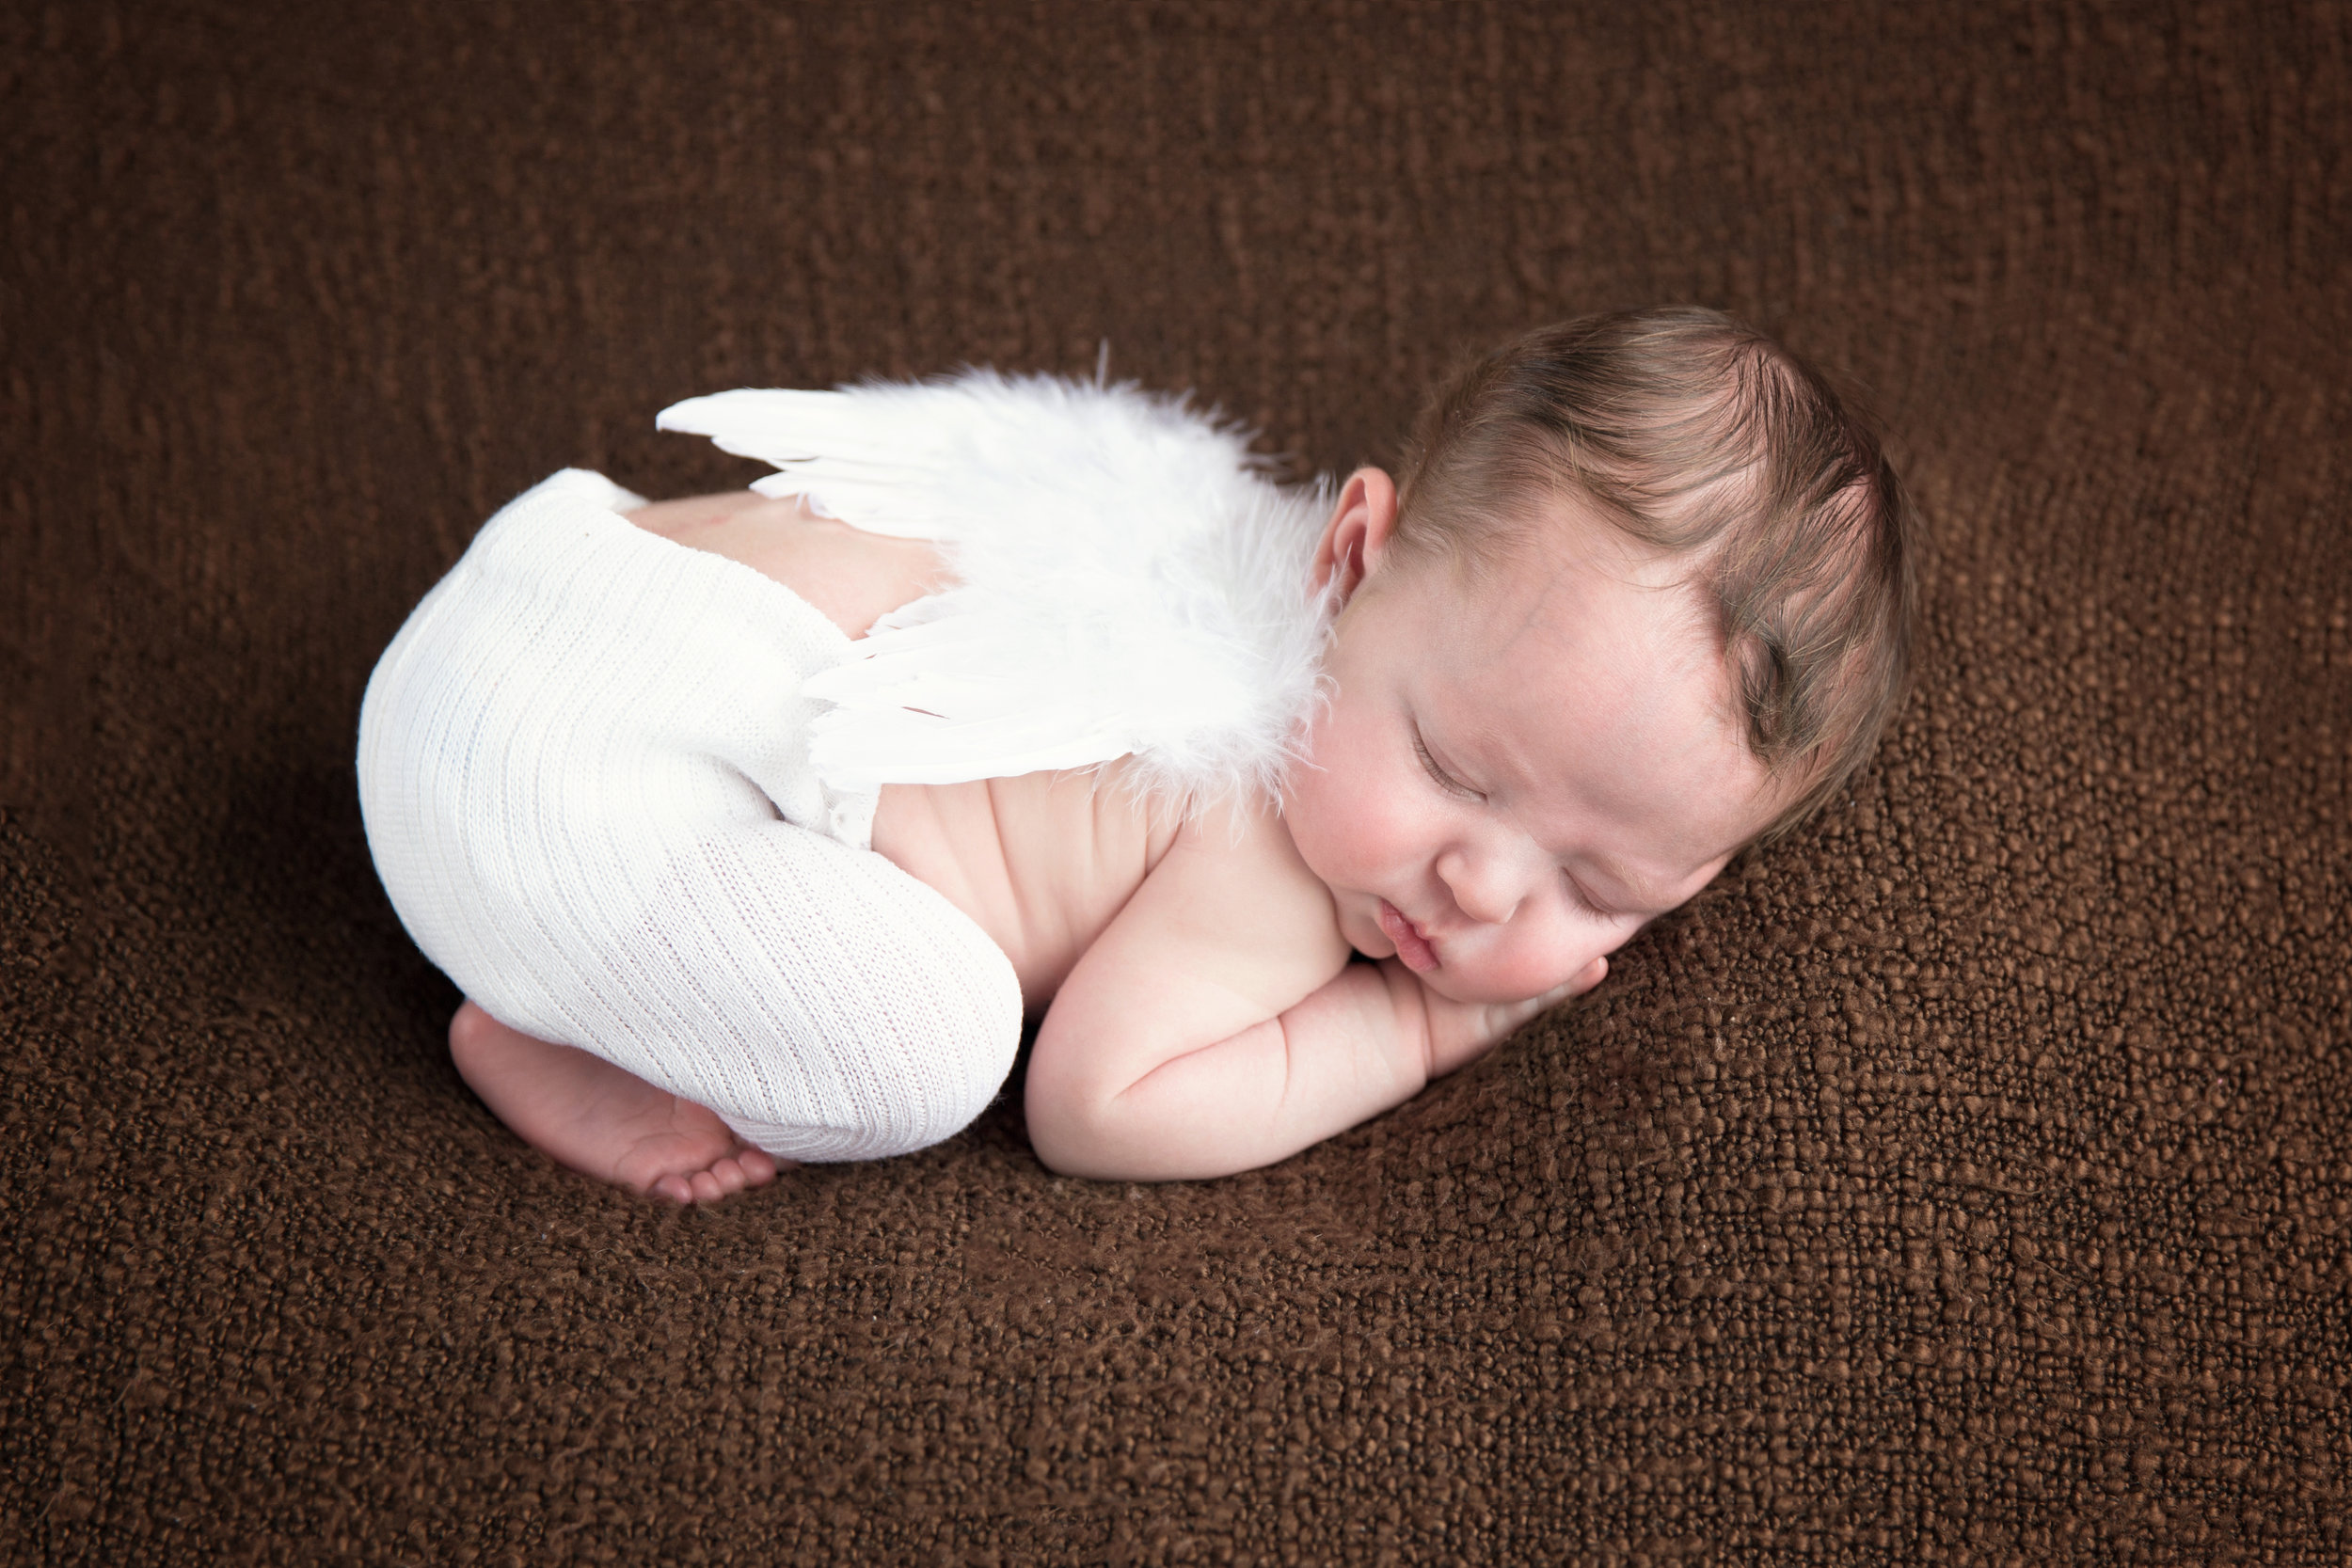 Newborn baby boy with angel wings. Calgary Newborn photographer. Milashka Photography